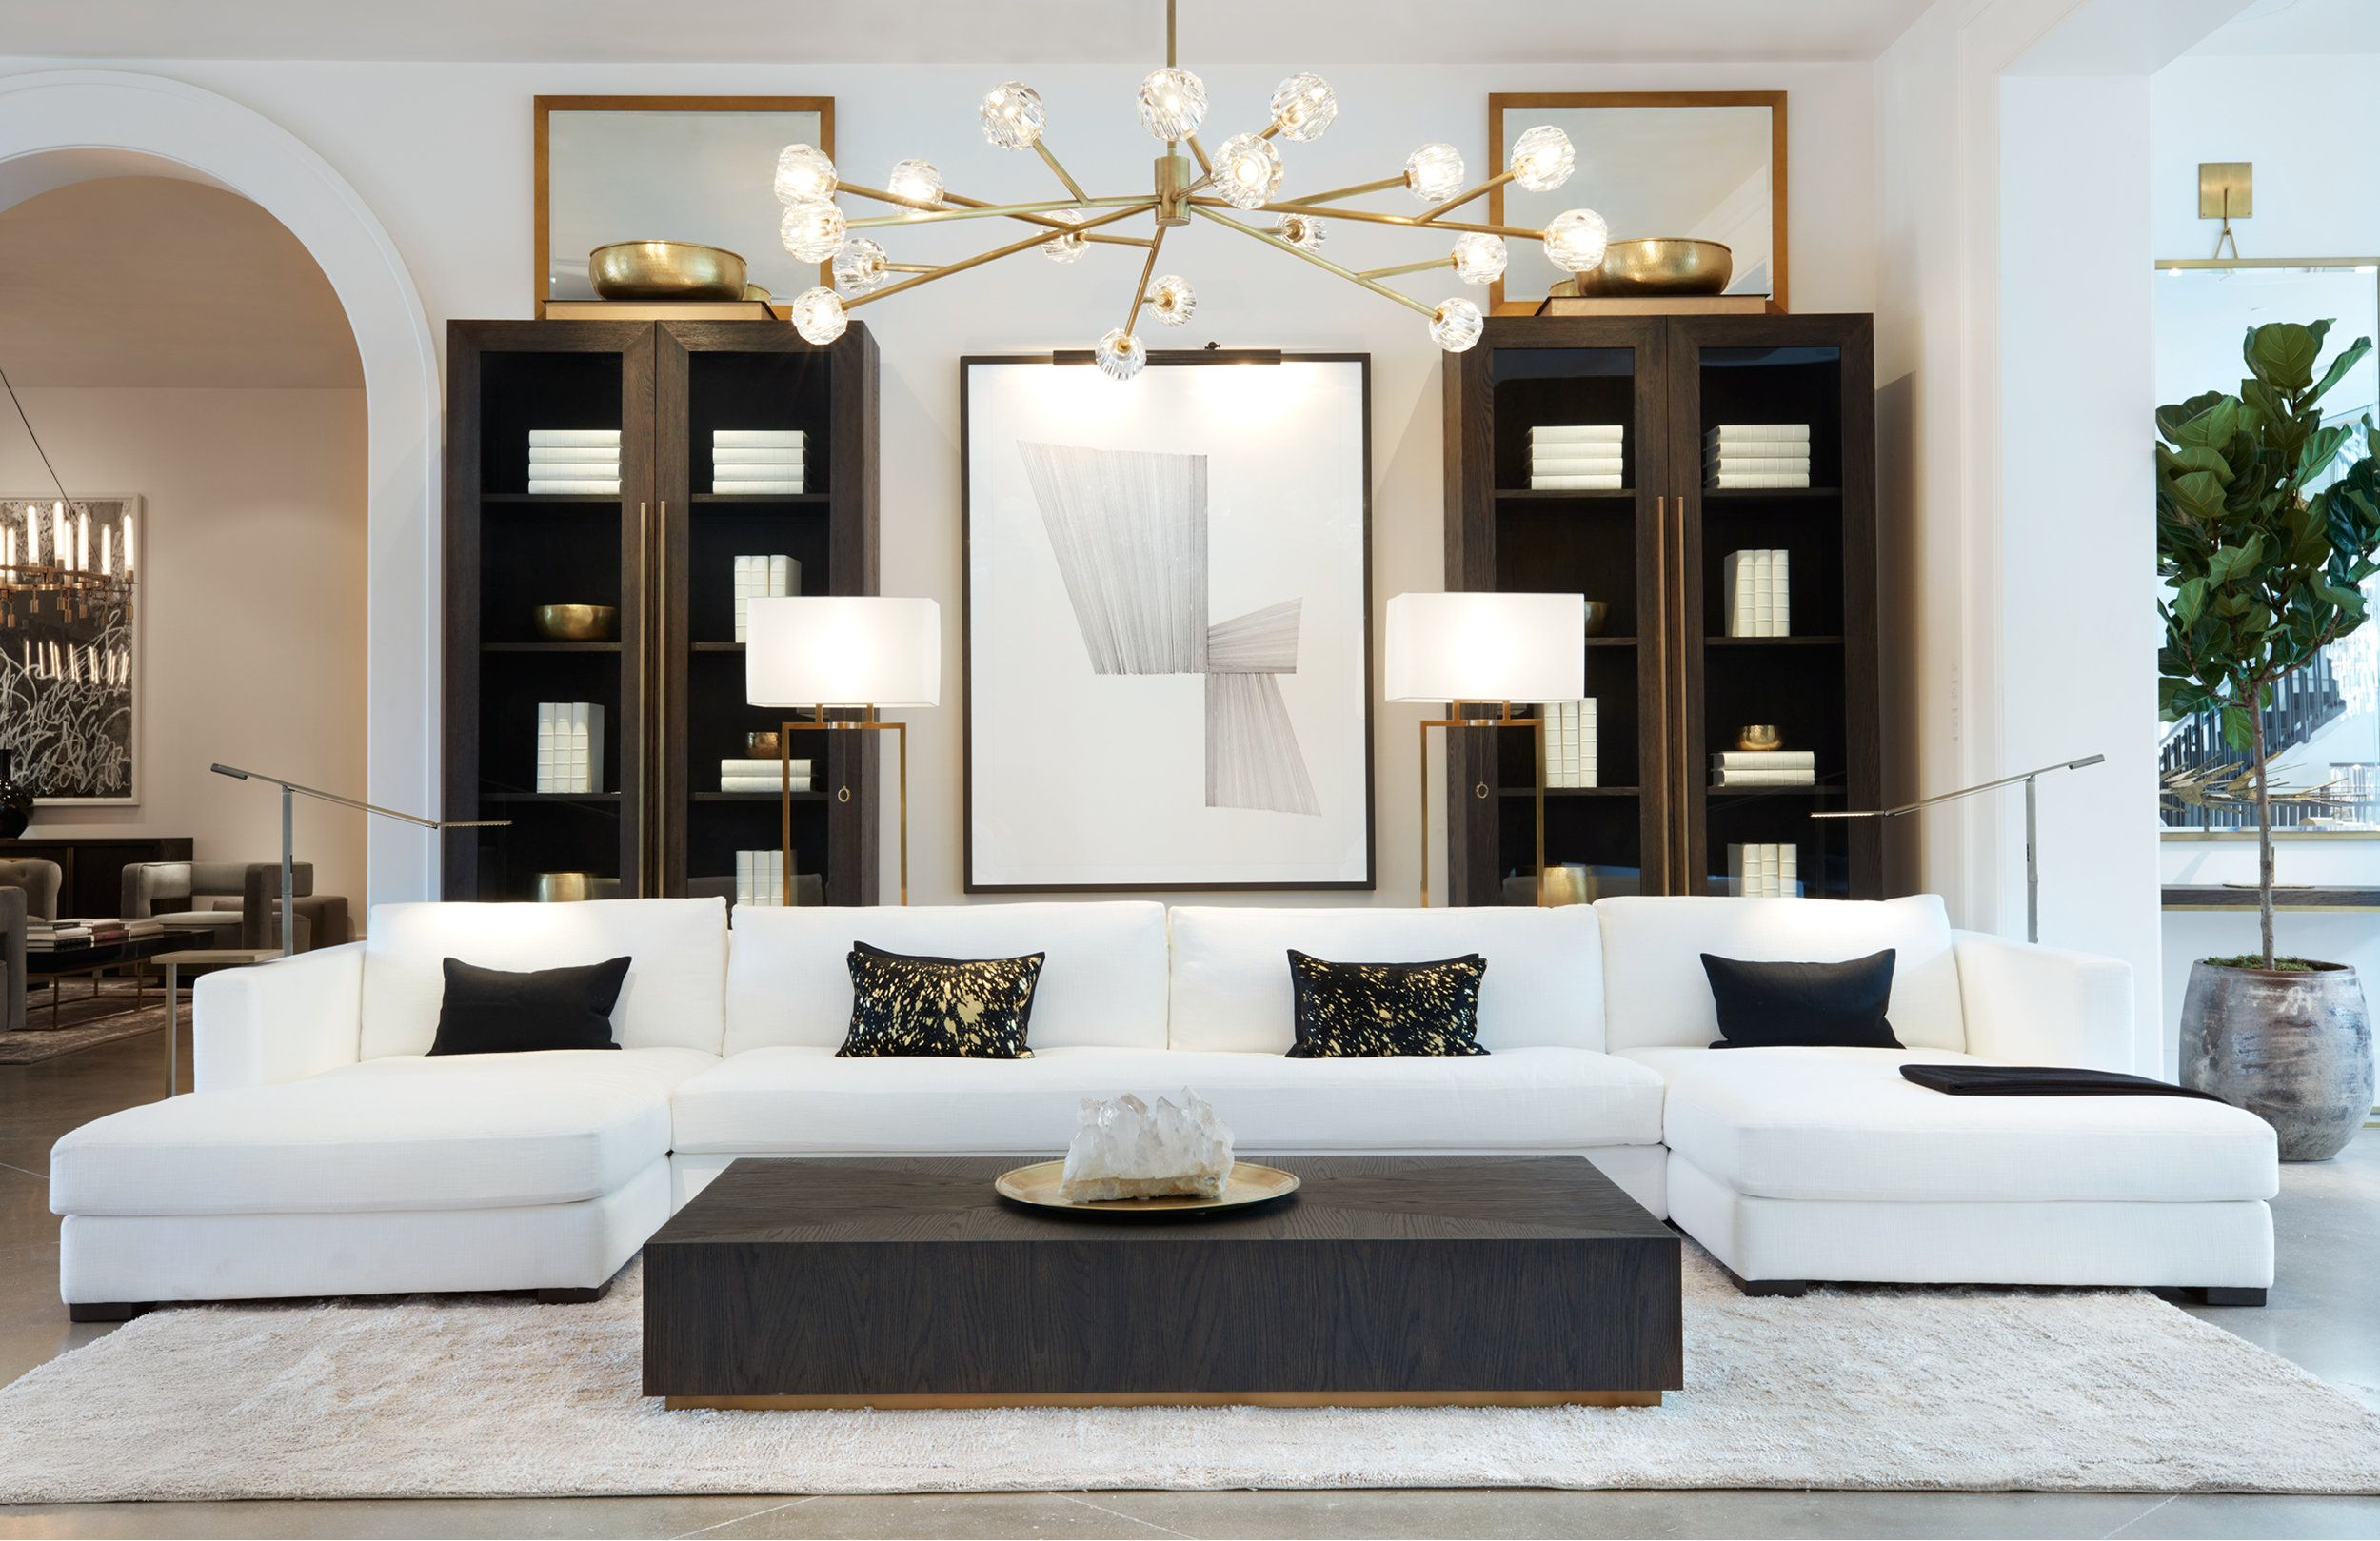 a look inside rh seattle the gallery at university on extraordinary living room ideas with lighting id=18832